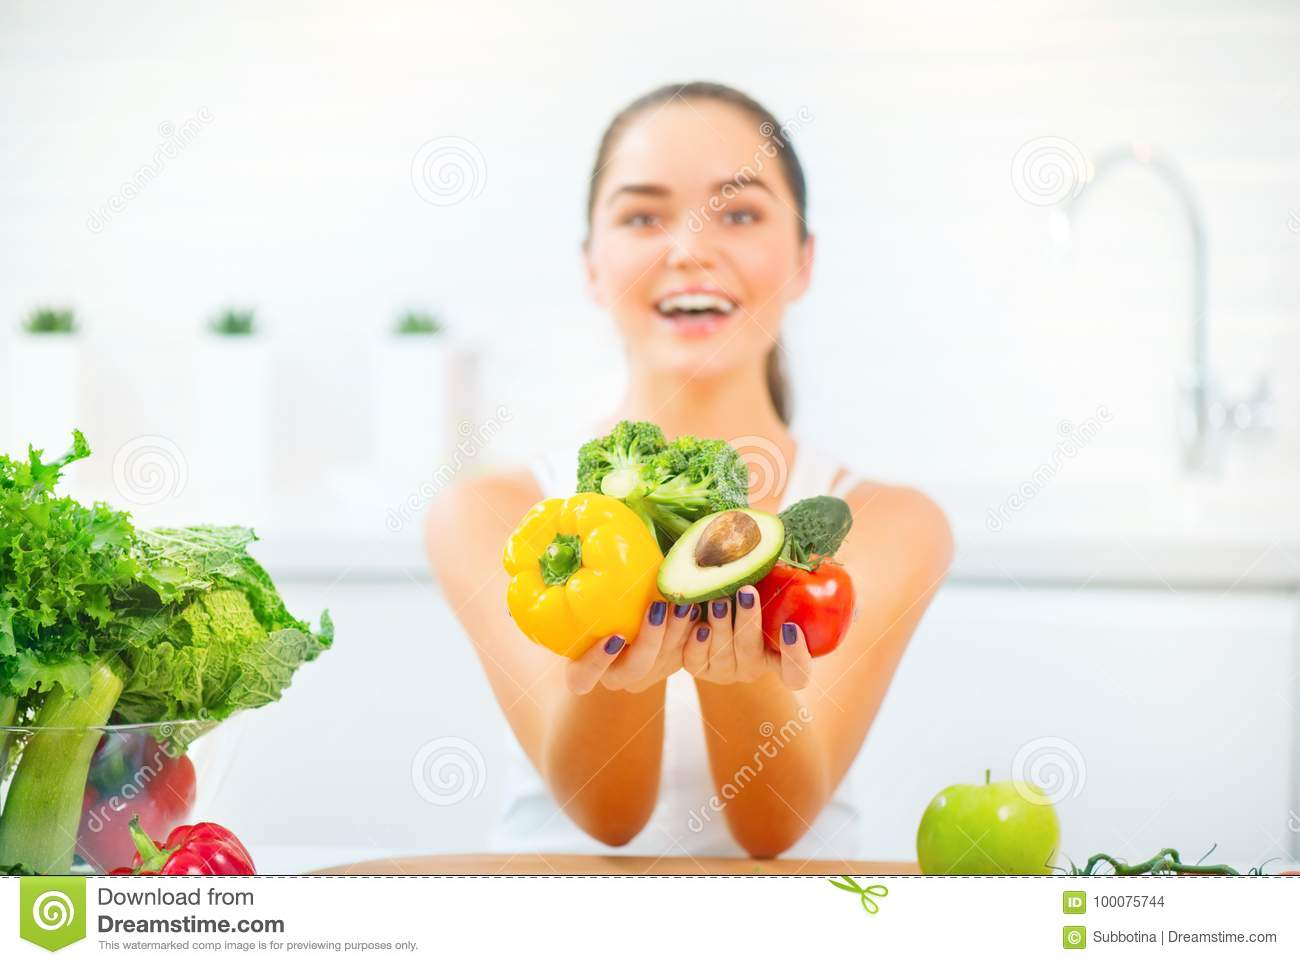 Fruit diet - a guarantee of beauty and health 34